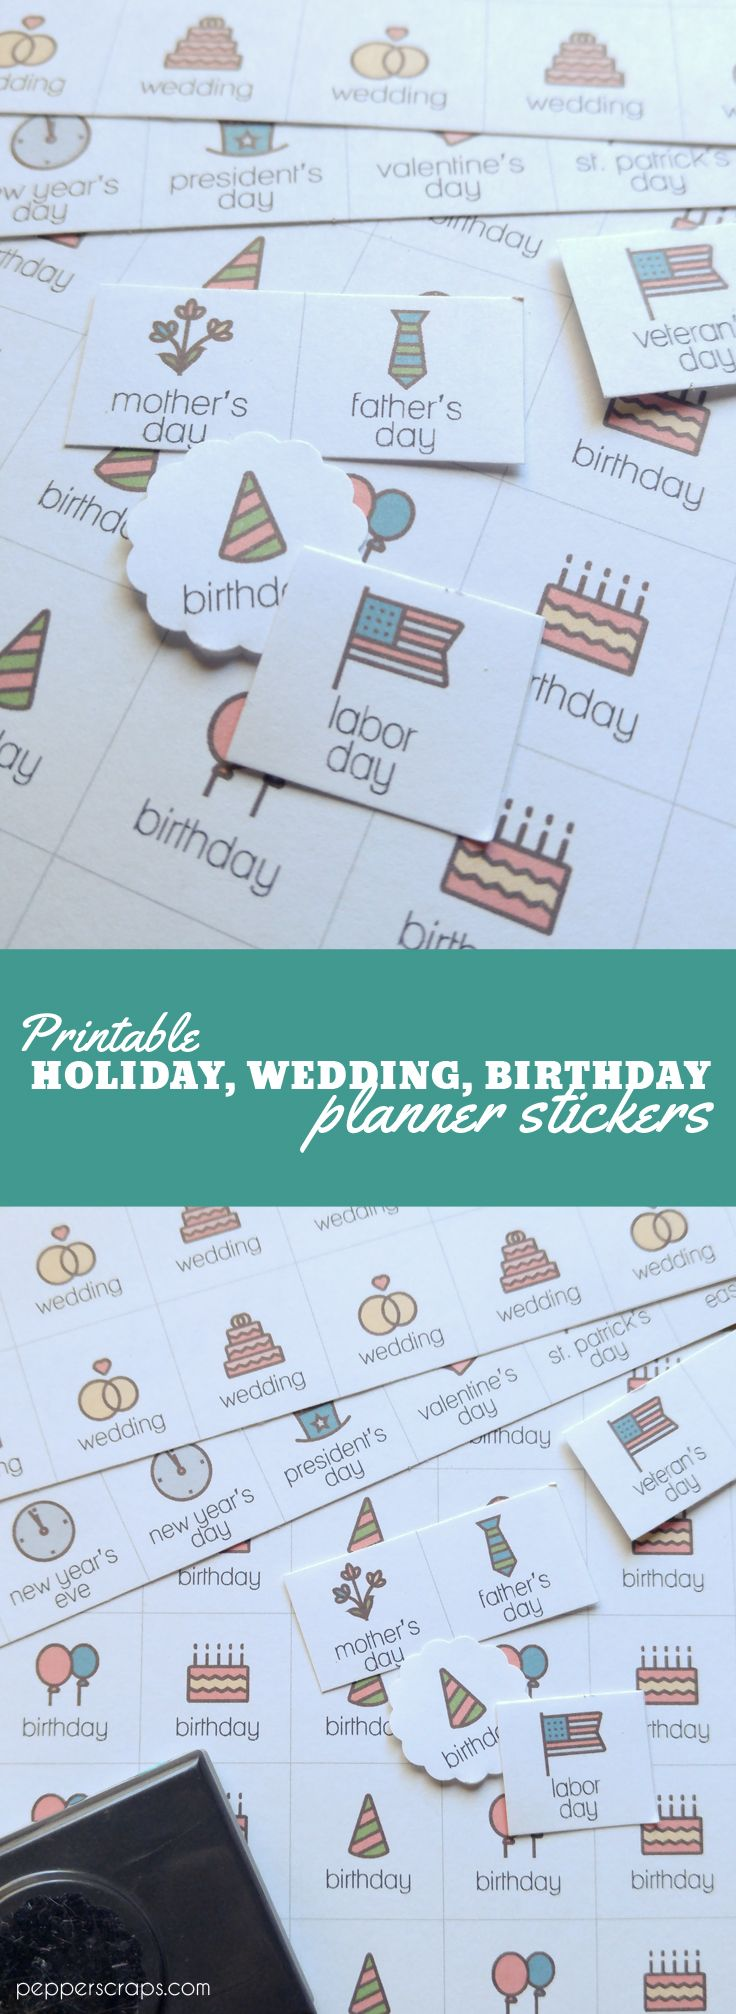 974 best stickers images on pinterest happy planner planner holiday wedding birthday planner stickers